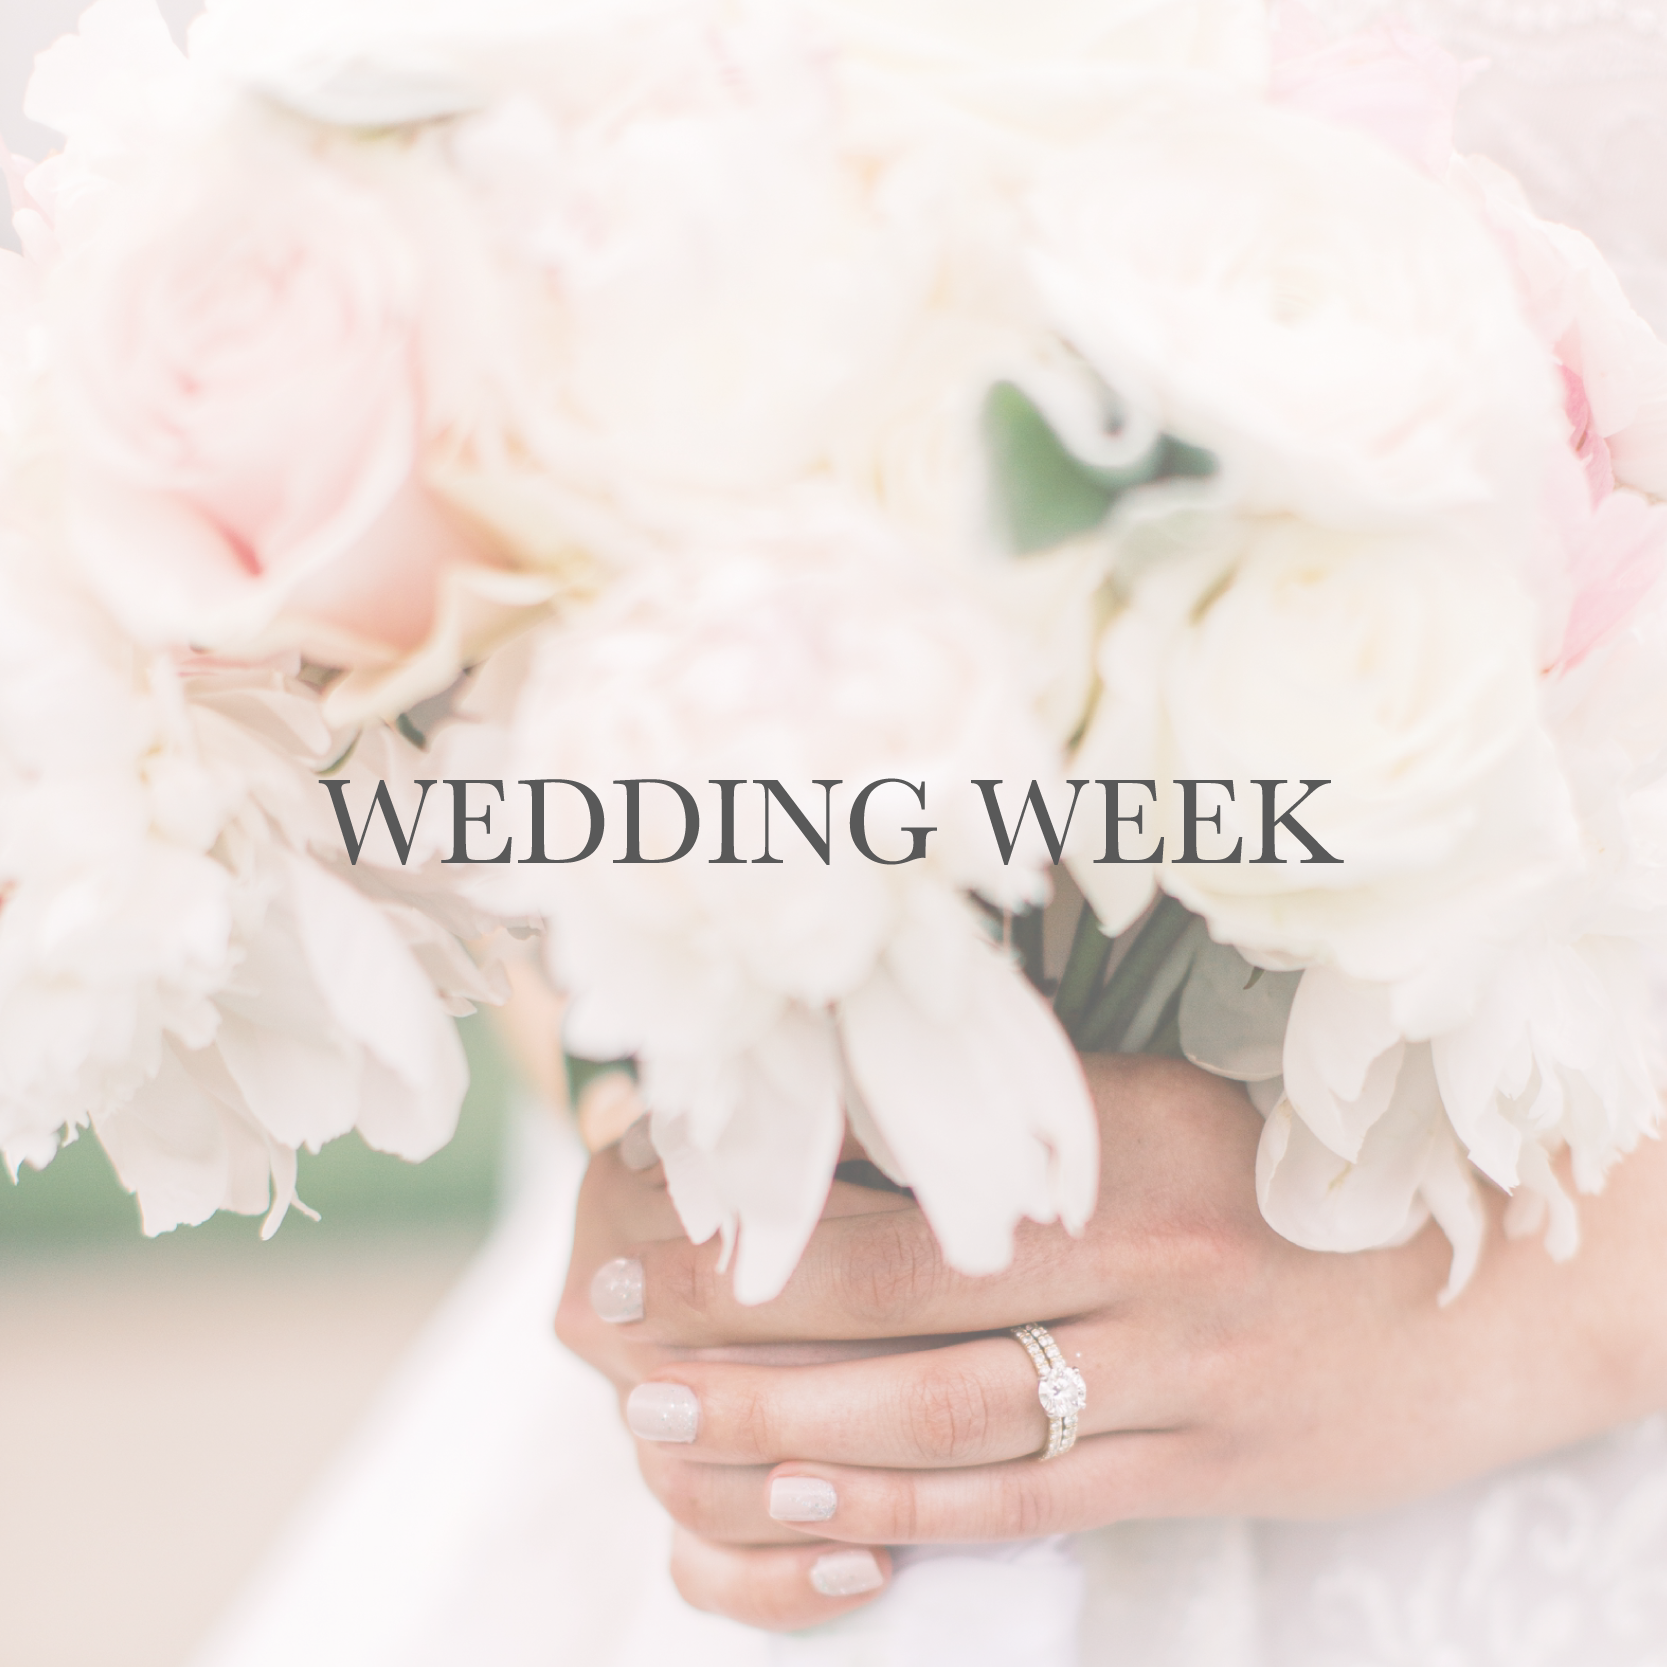 blush-wedding-bouquet-hannah-bjorndal-photography.png